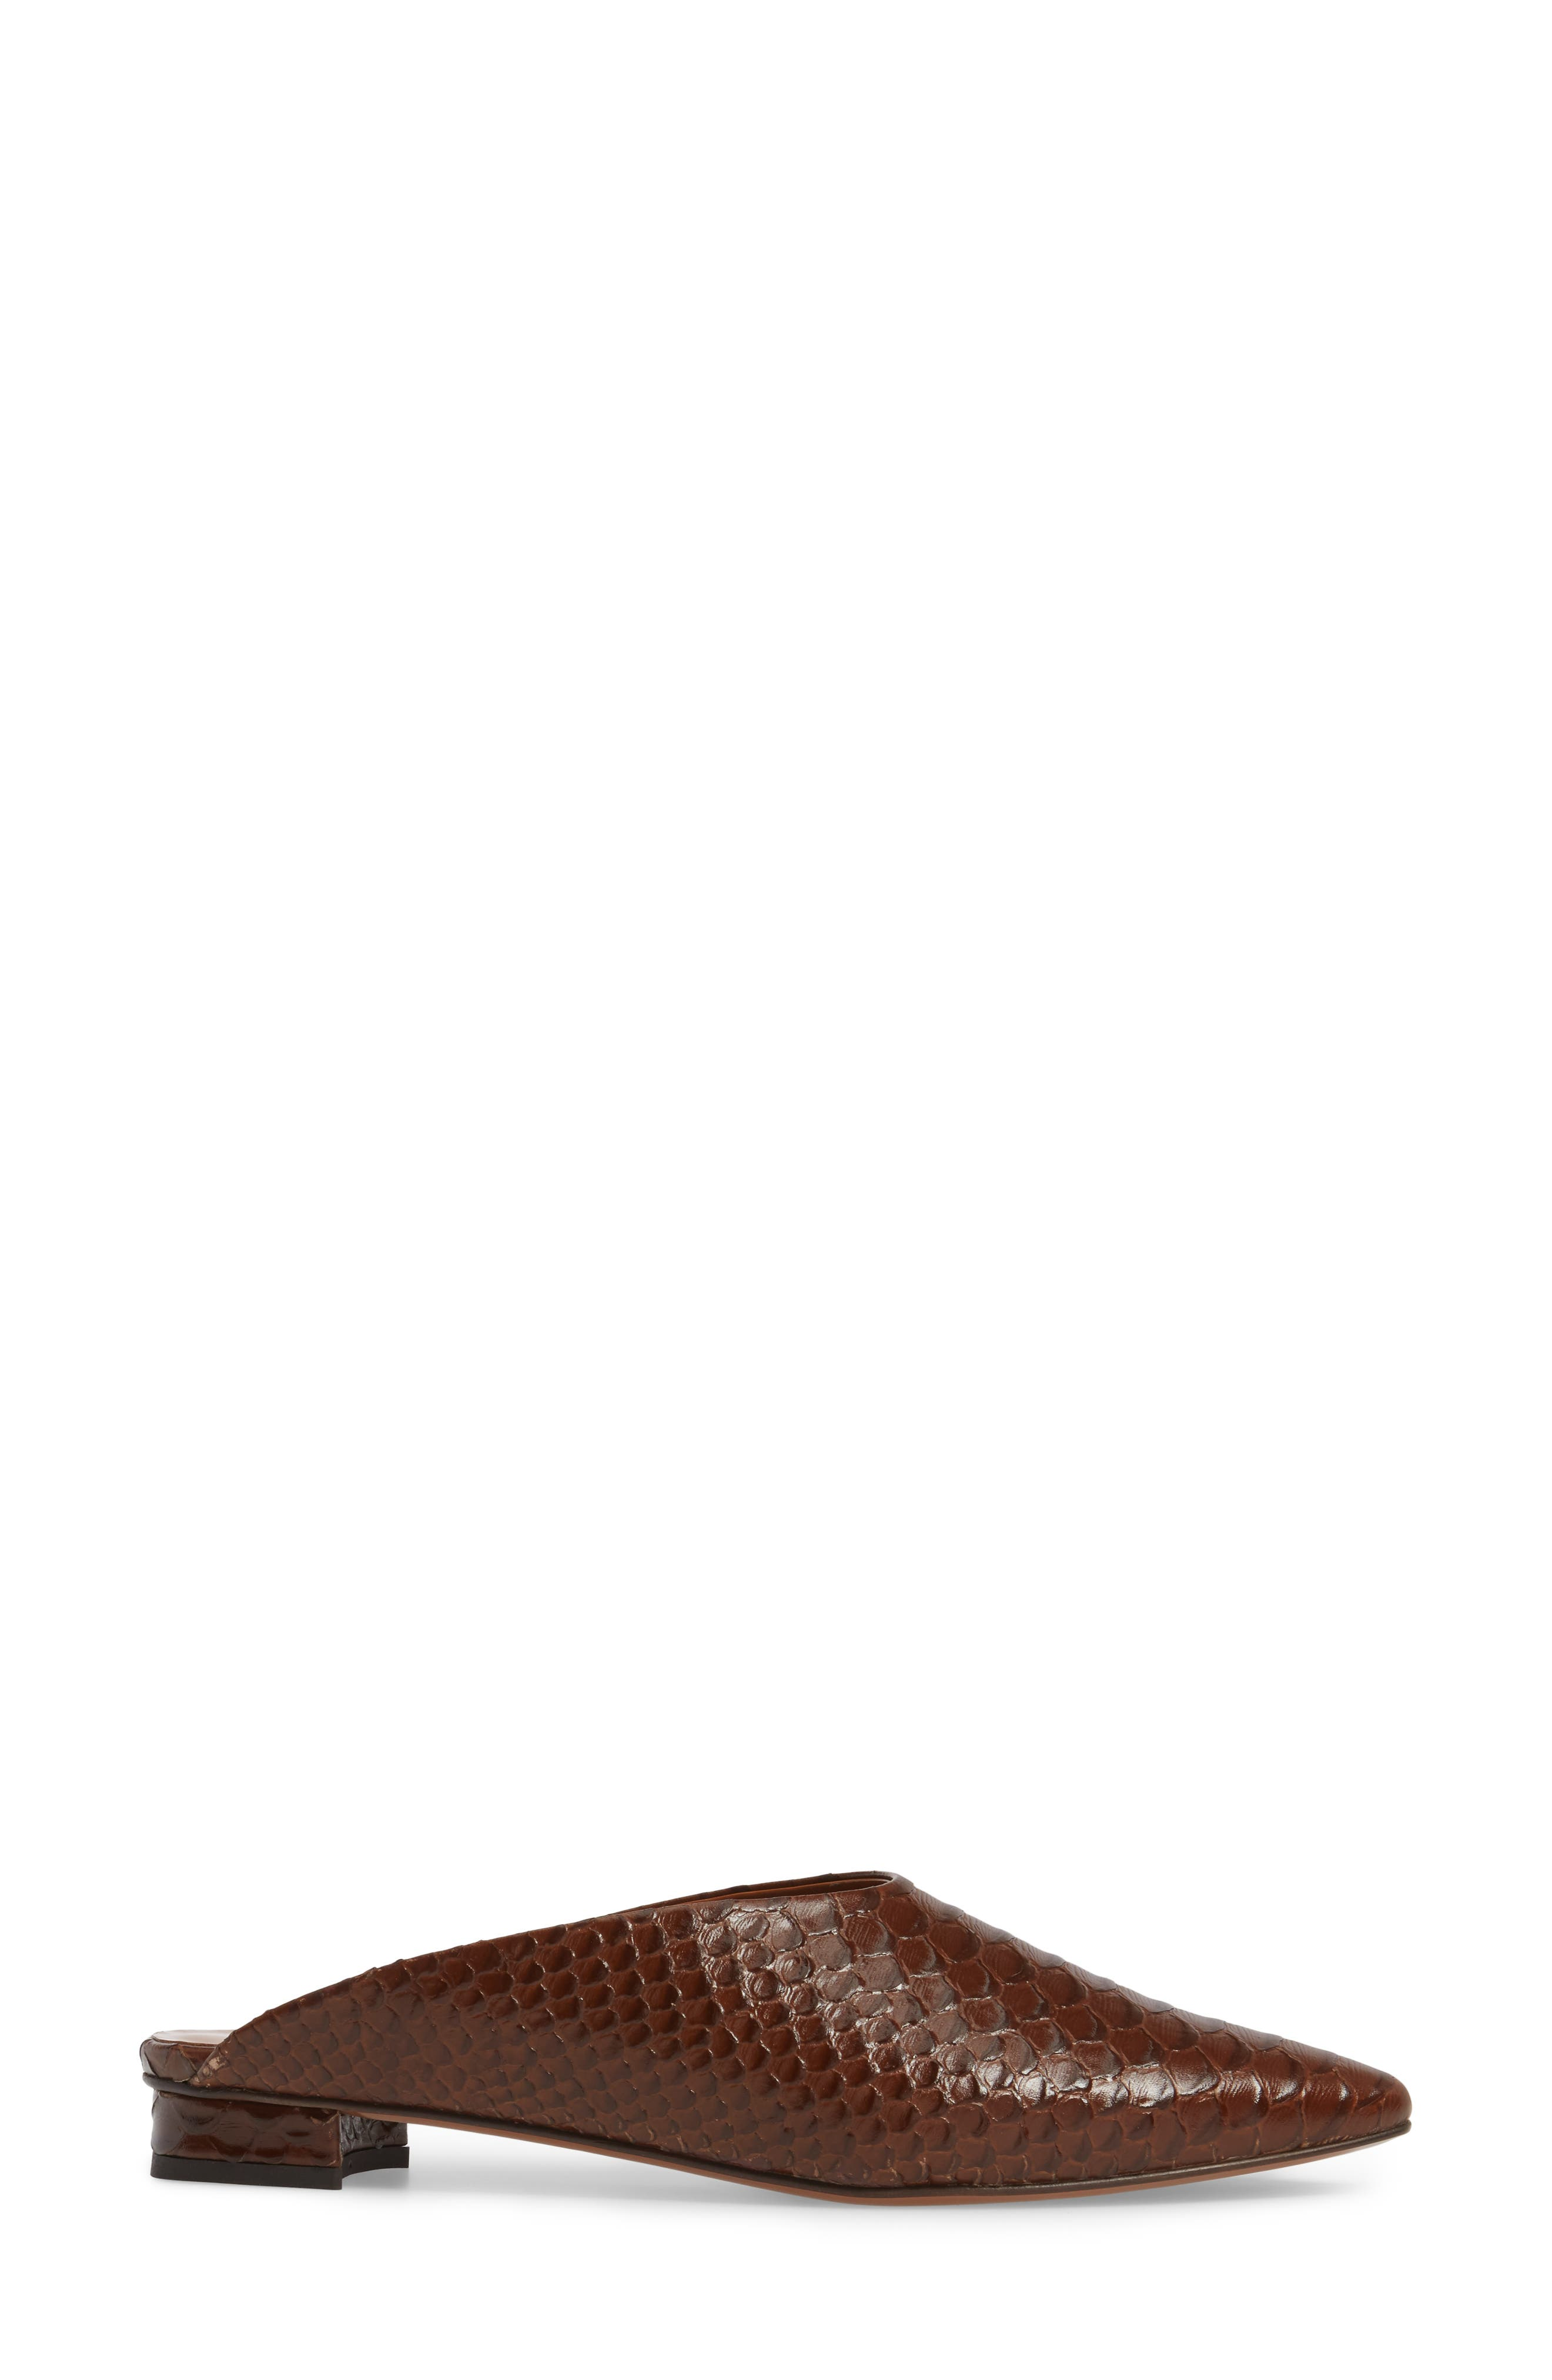 Patrizia Pointed Toe Mule,                             Alternate thumbnail 3, color,                             Brown Leather